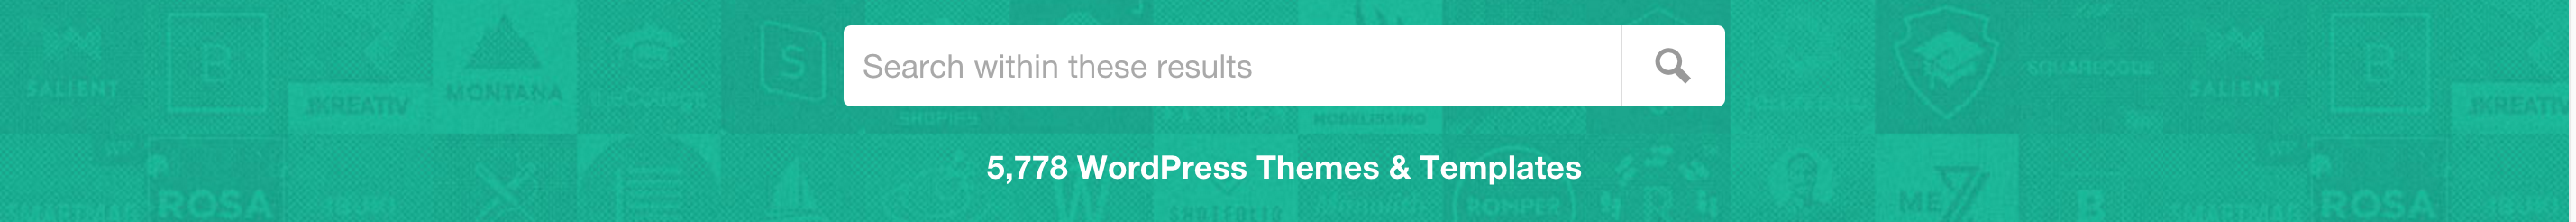 Wordpress Theme Search